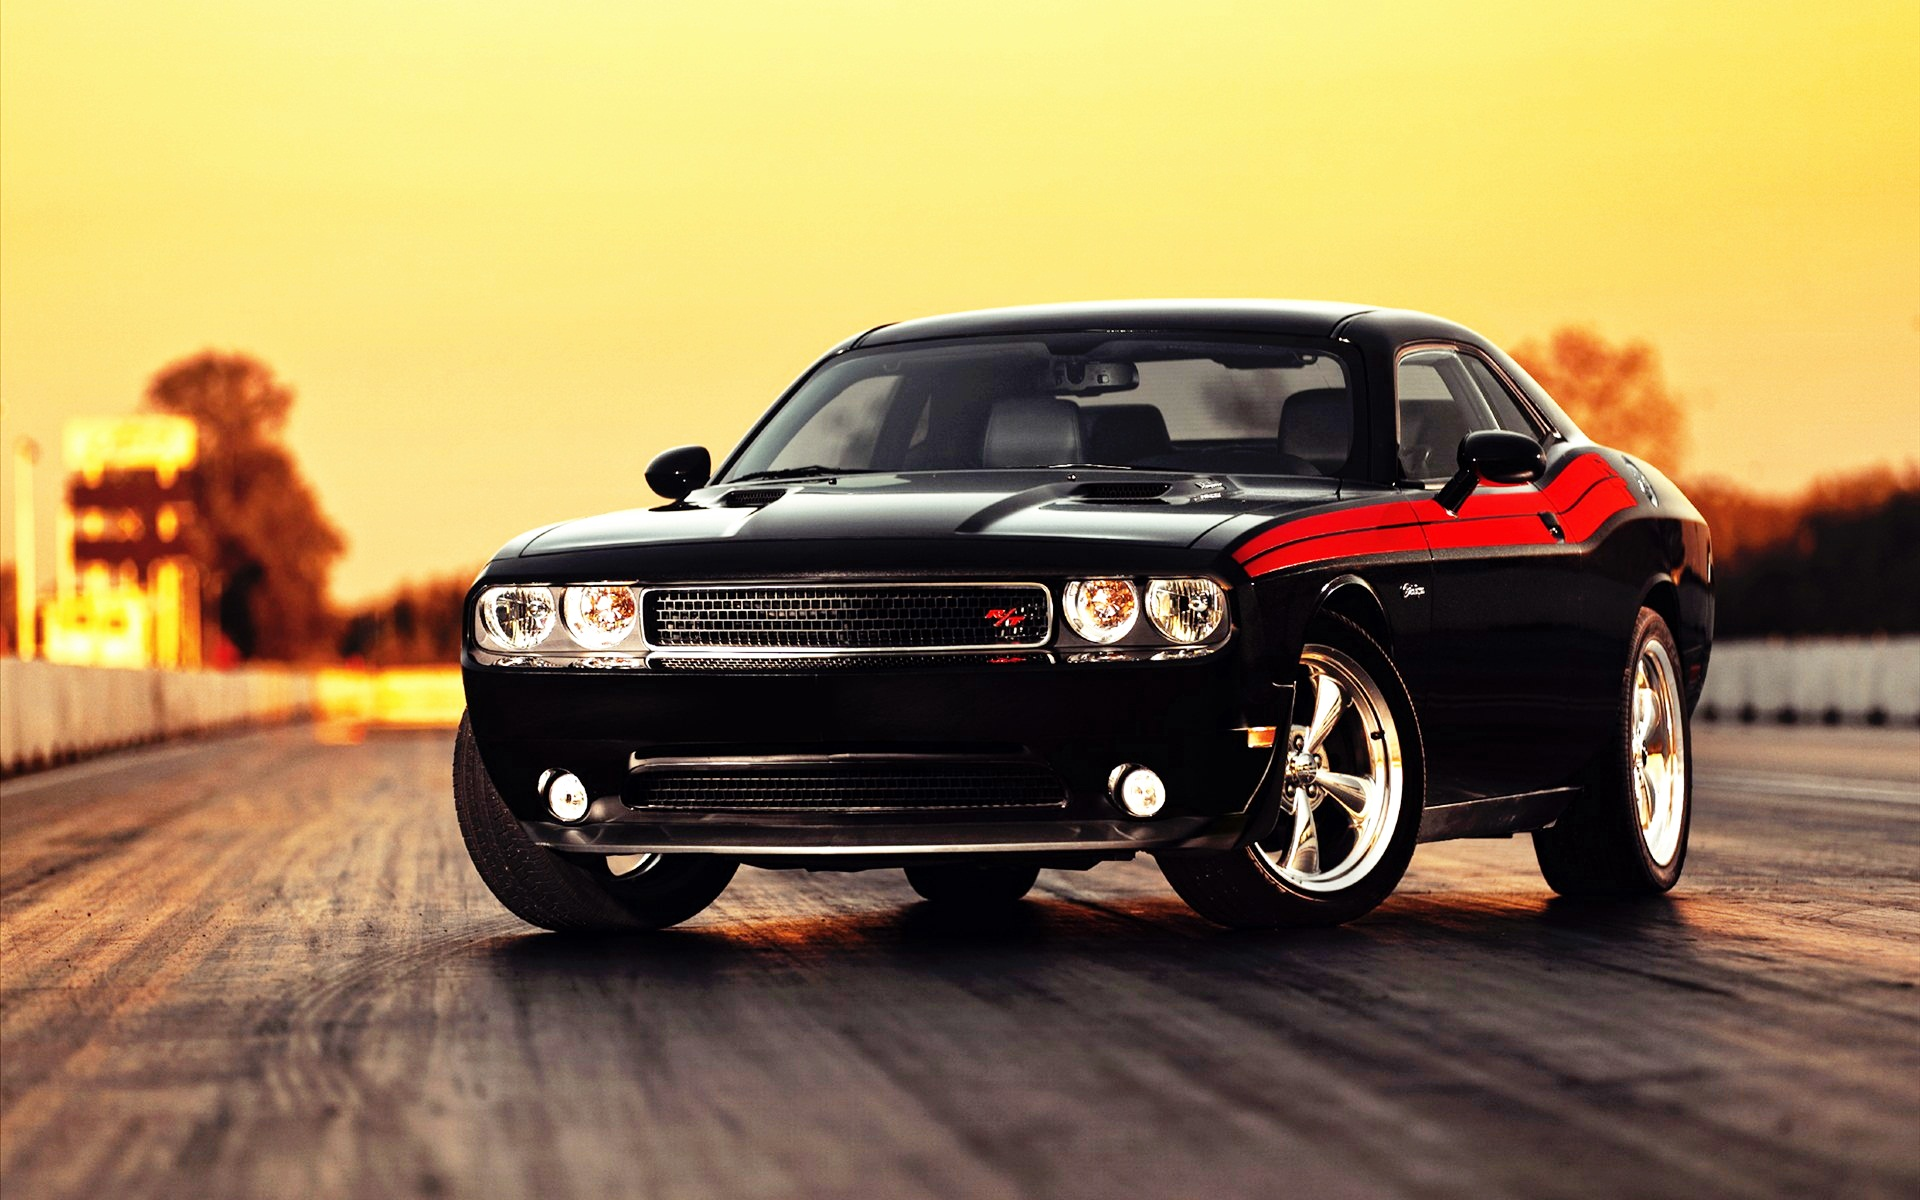 Dodge Challenger Wallpapers HD Wallpapers 1920x1200